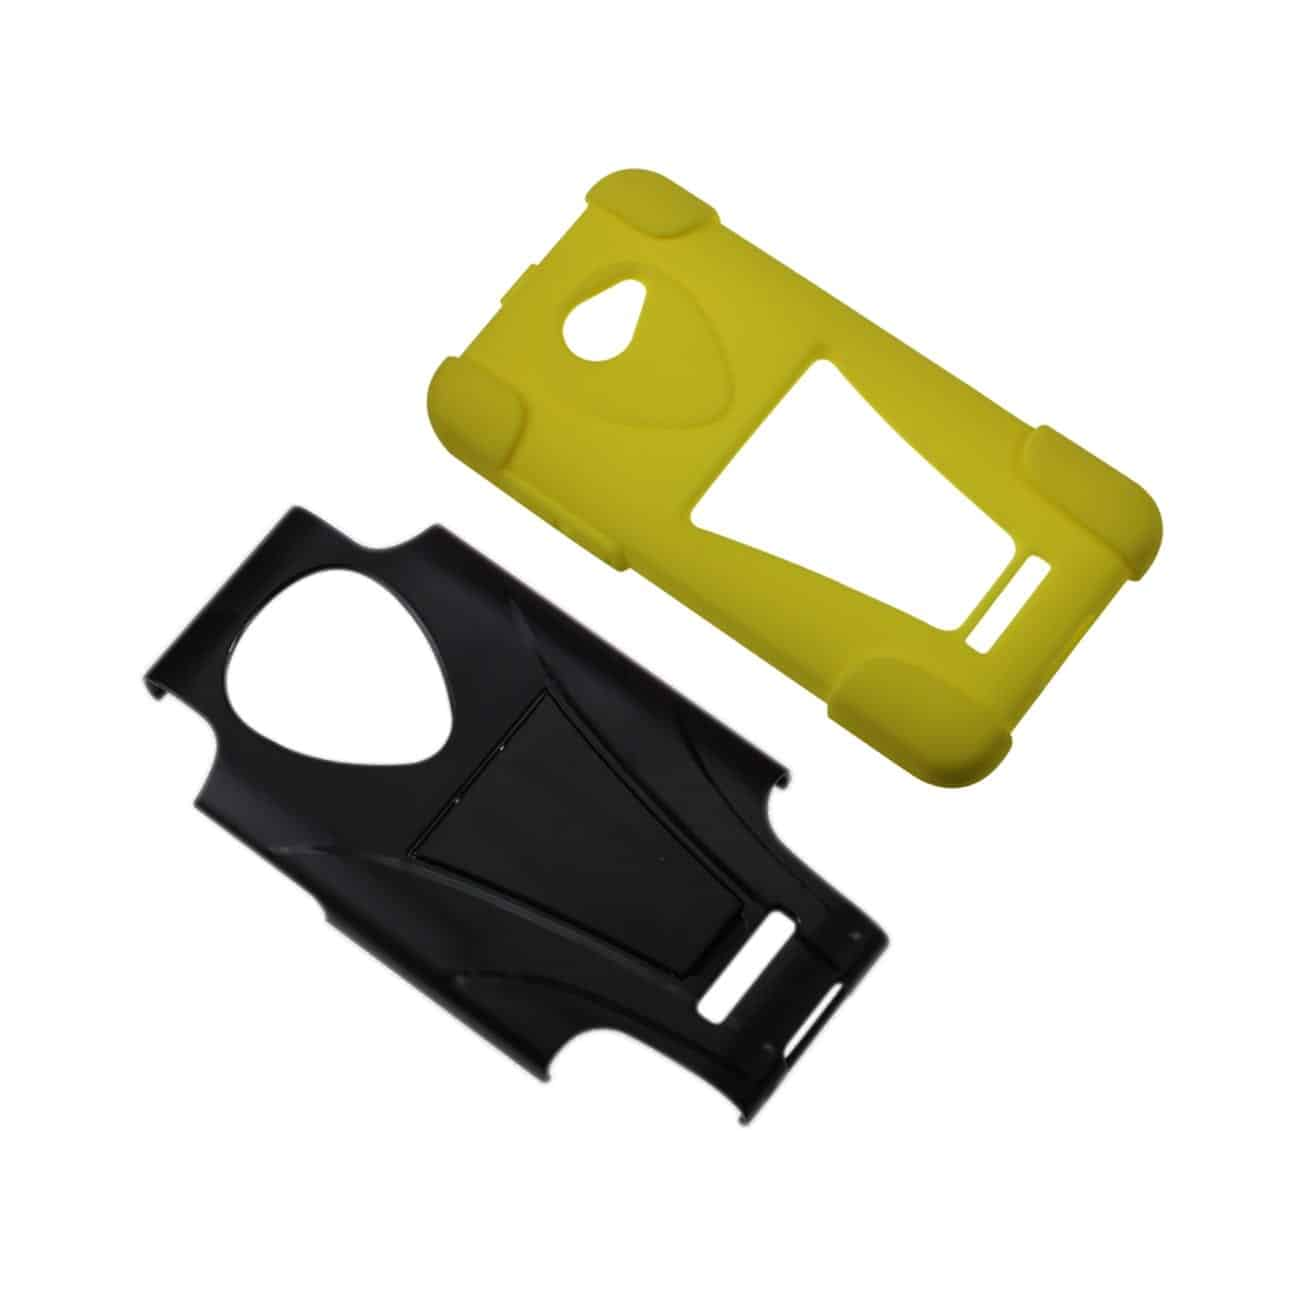 HTC DROID DNA HYBRID HEAVY DUTY CASE WITH KICKSTAND IN BLACK YELLOW